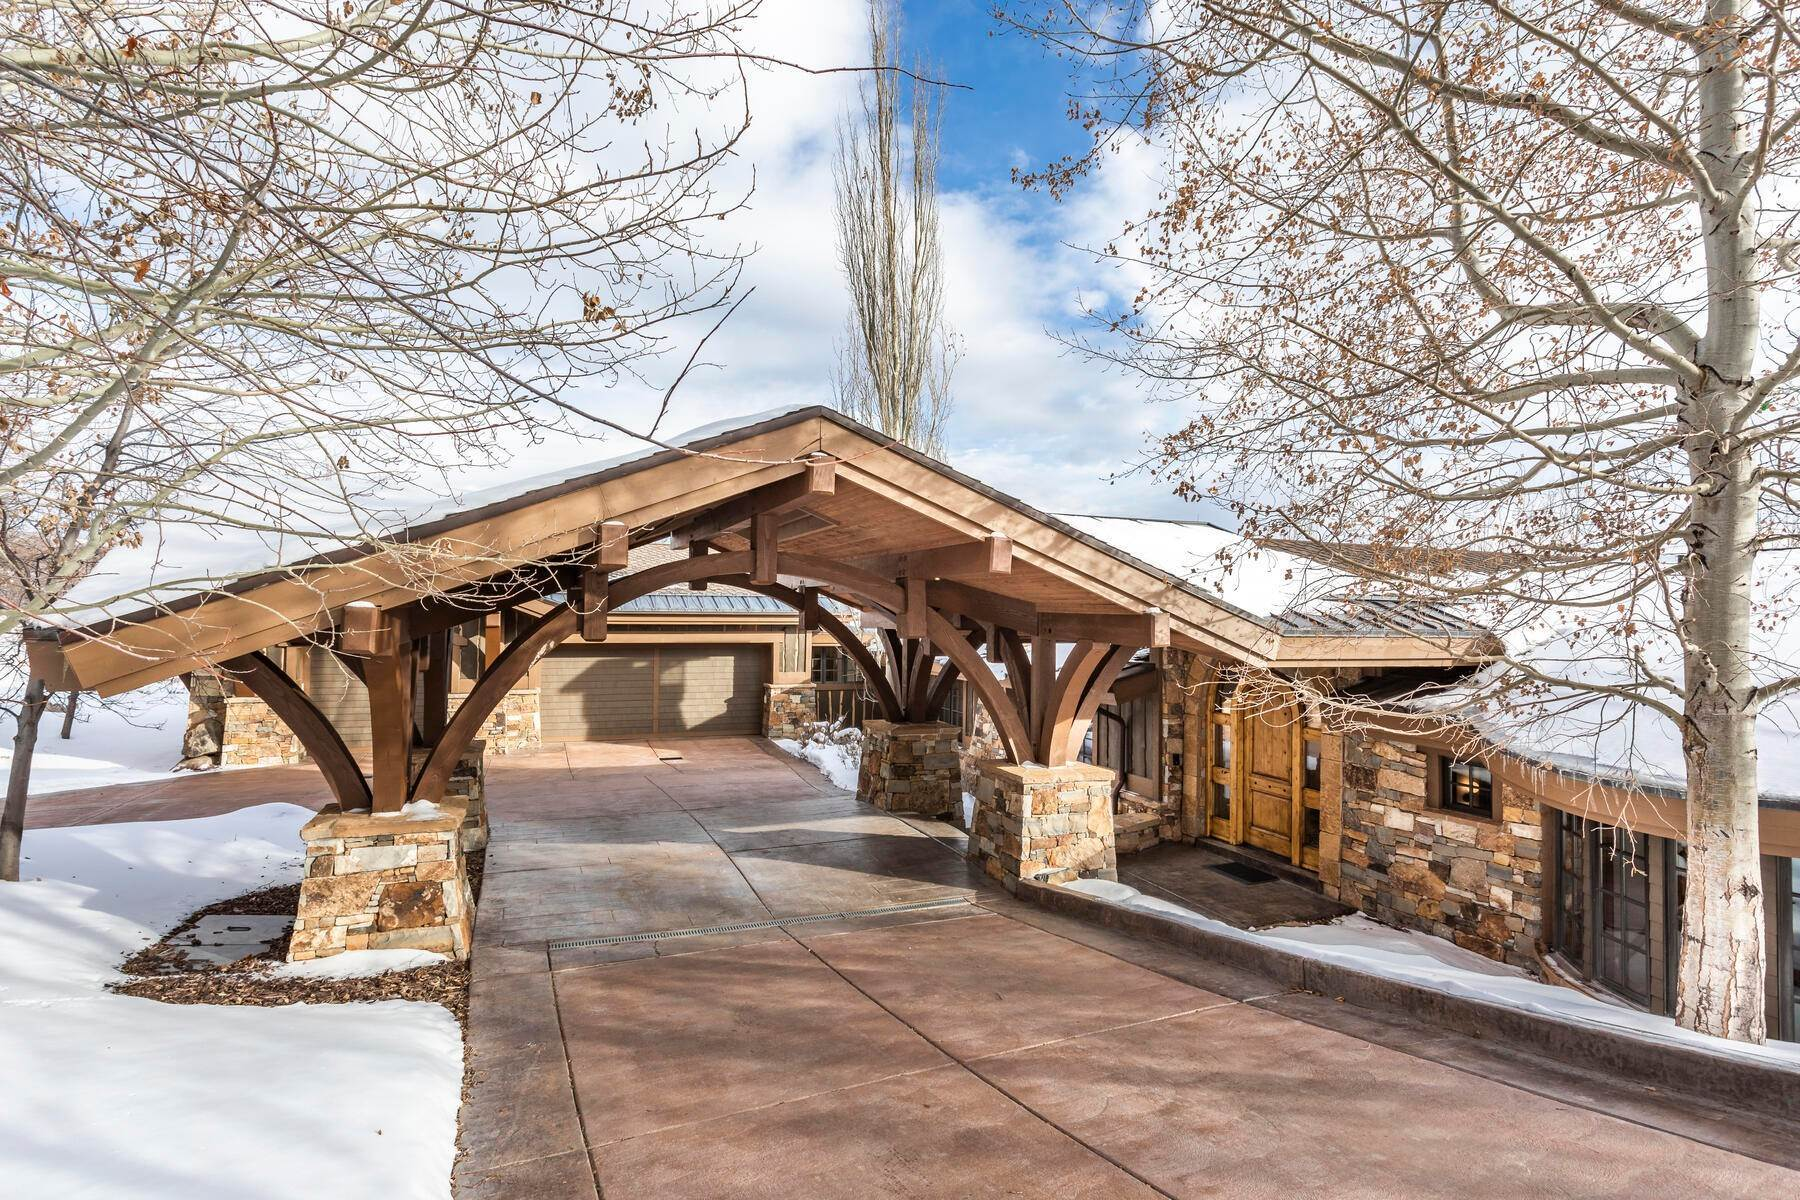 Single Family Homes for Sale at Sophisticated Masterpiece in Promontory 8340 N Promontory Ranch Rd Park City, Utah 84098 United States